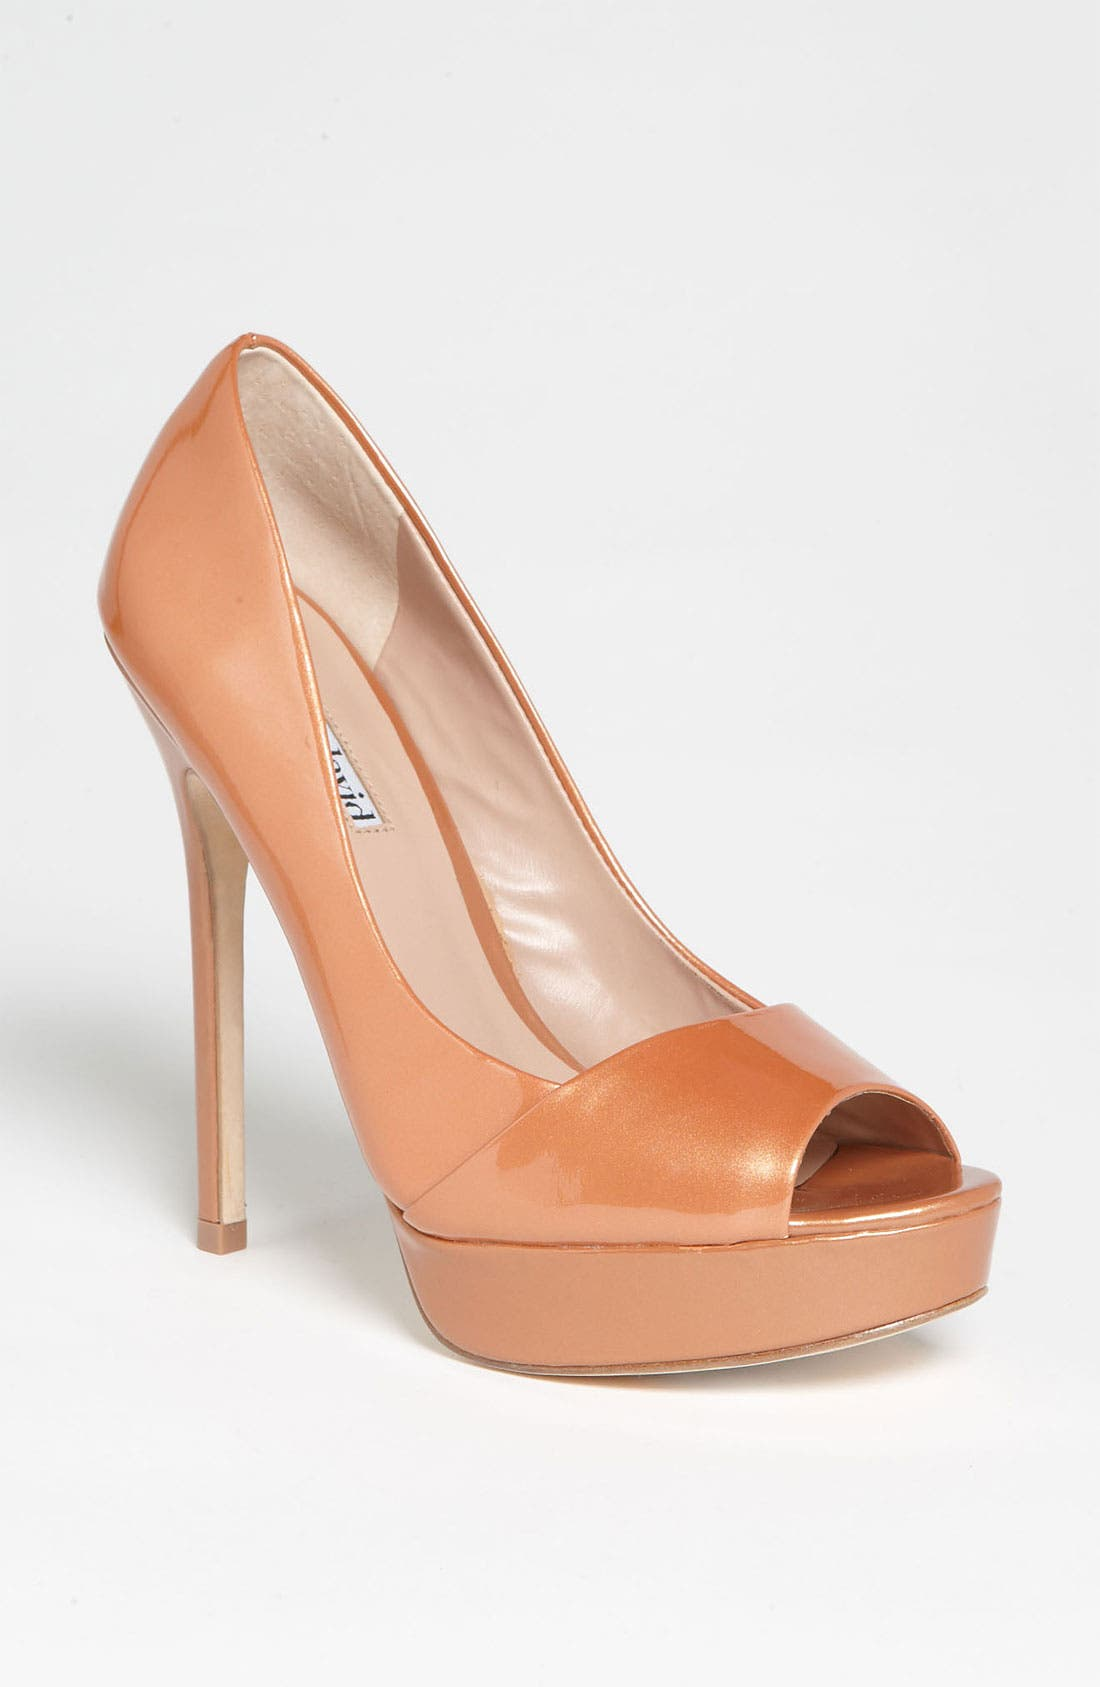 Main Image - Charles David 'Vacci' Pump